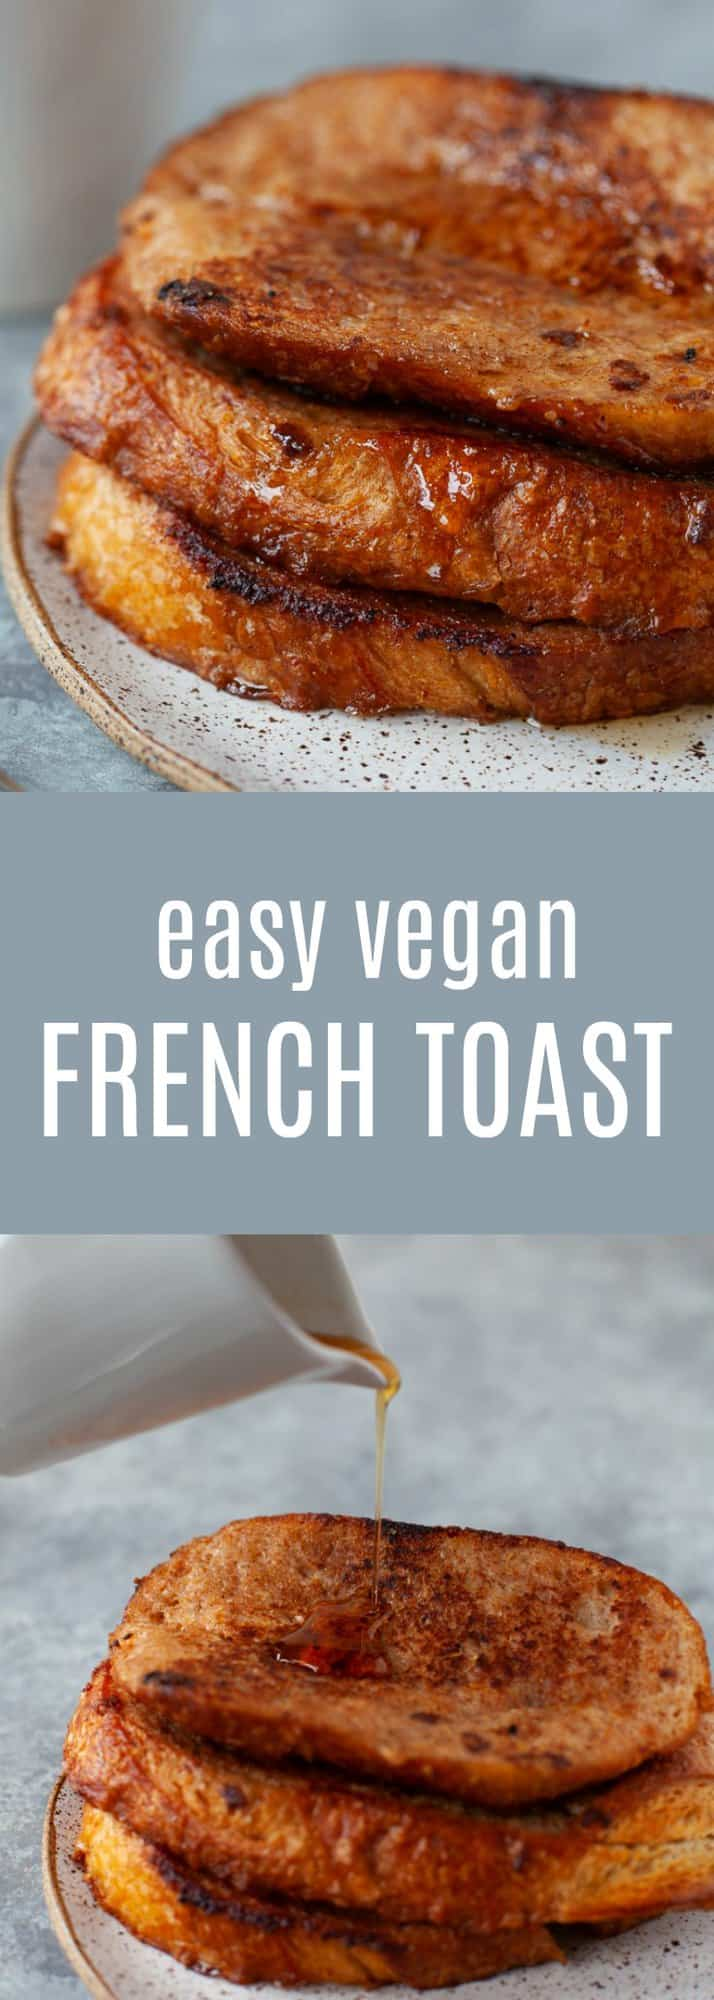 This easy vegan french toast calls for only 5 ingredients! And it's still crispy, sweet and golden-brown. Perfect for Sunday brunch, or my favorite - breakfast for dinner!#vegan #frenchtoast